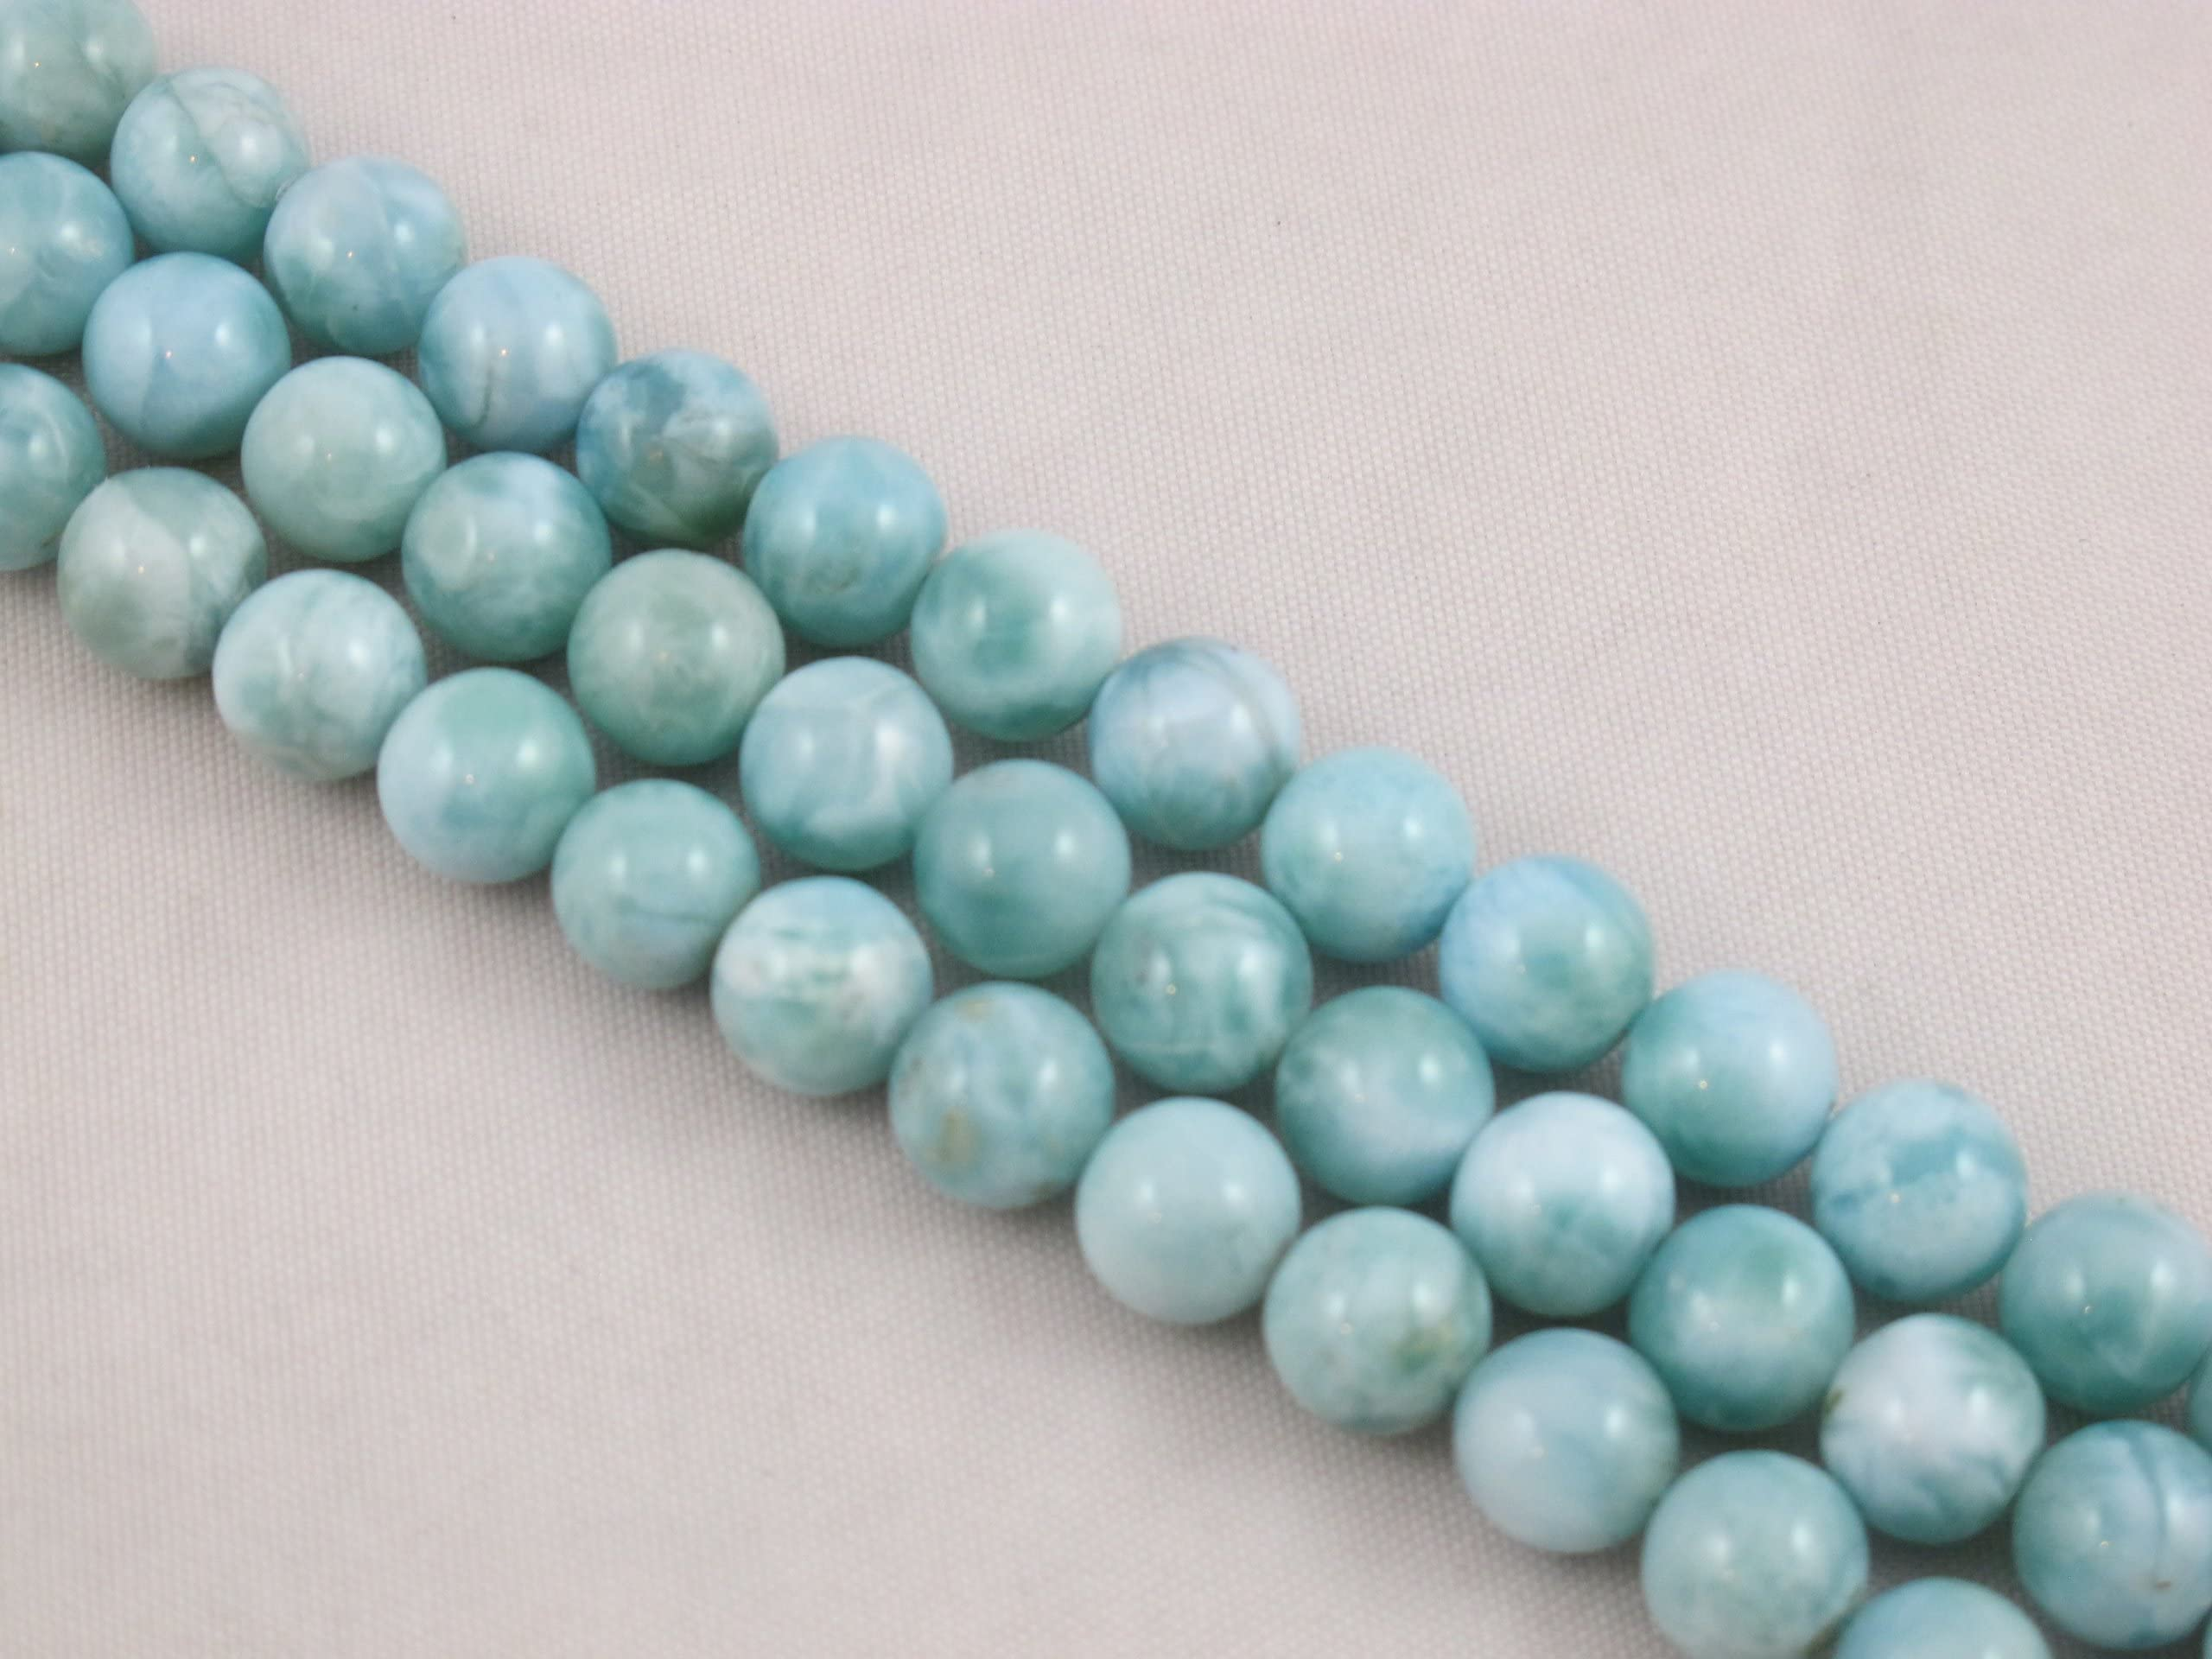 Natural Larimar Beaded Necklace ~ 6mm 7mm Larimar Plain Smooth Round Beads Necklace ~ Larimar Necklace ~ Beautiful Gift For Her AMB-484